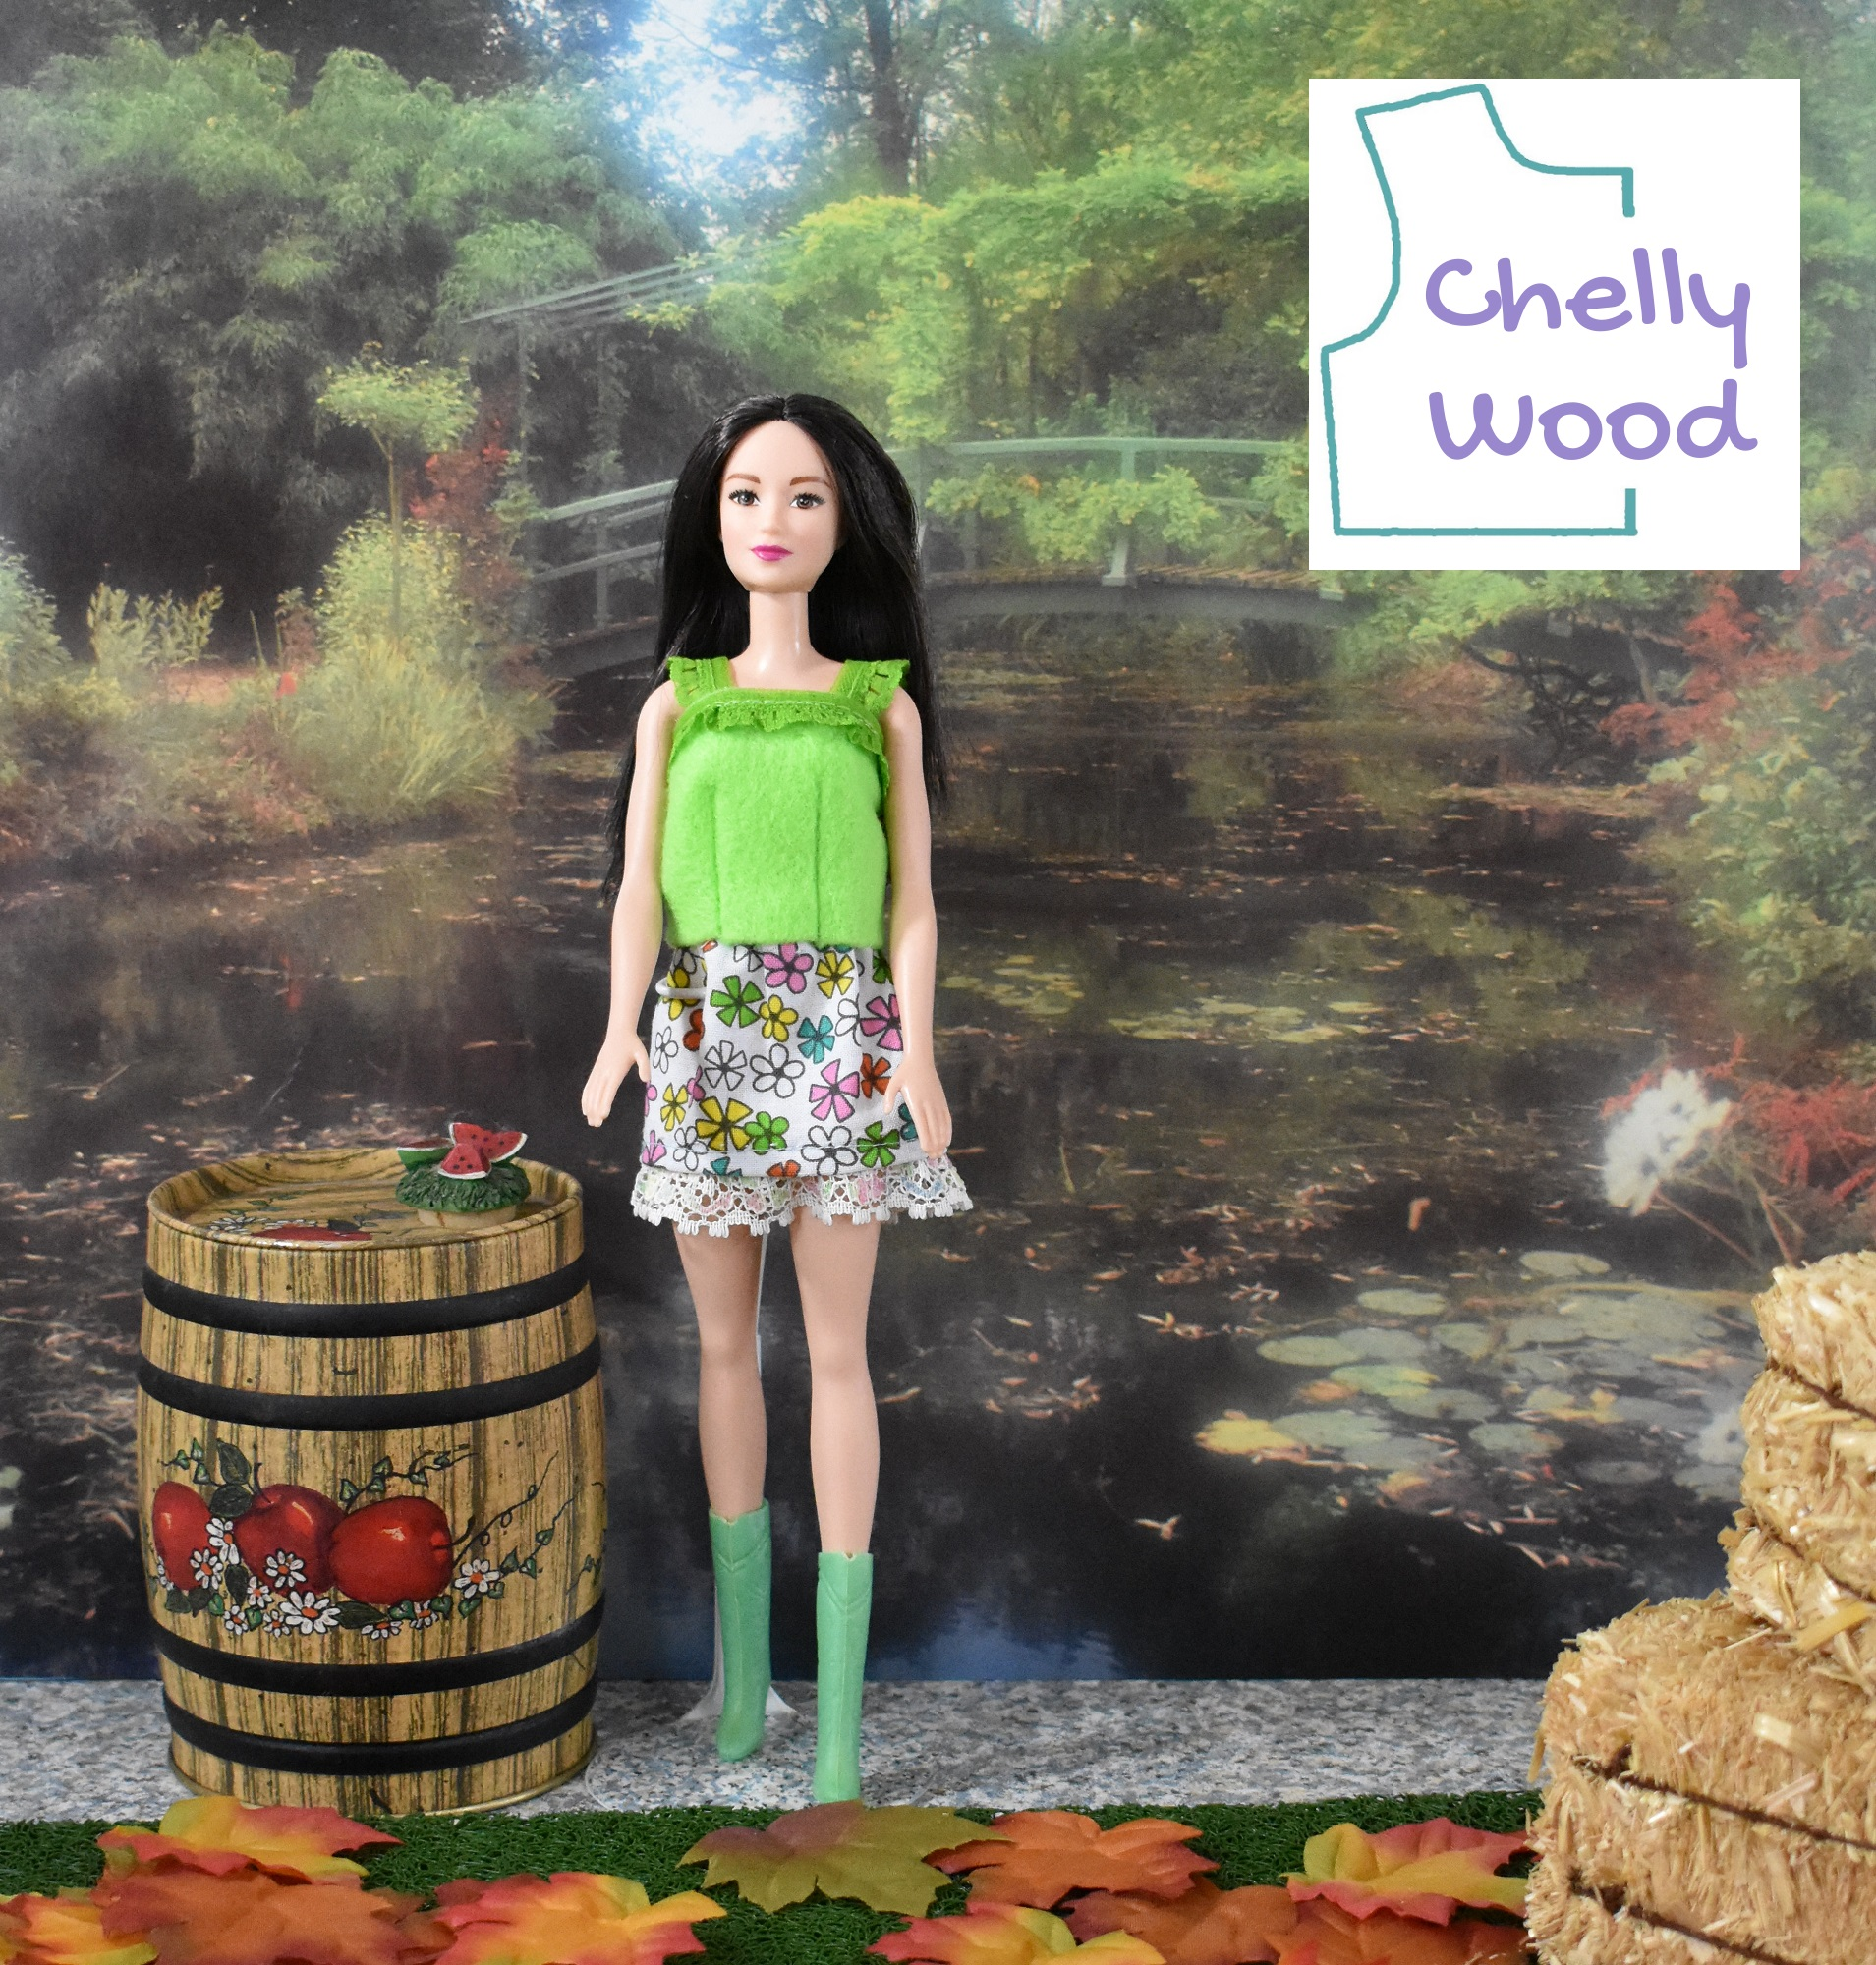 The image shows a modern Barbie modeling handmade doll clothes, including a lime green felt shirt with lace trim and lace straps along with a separate floral cotton skirt with lace trim. The doll's boots are green. She stands facing the camera. Beside her is a miniature apple barrel. If you'd like to make the outfit shown, please click on the link in the caption.